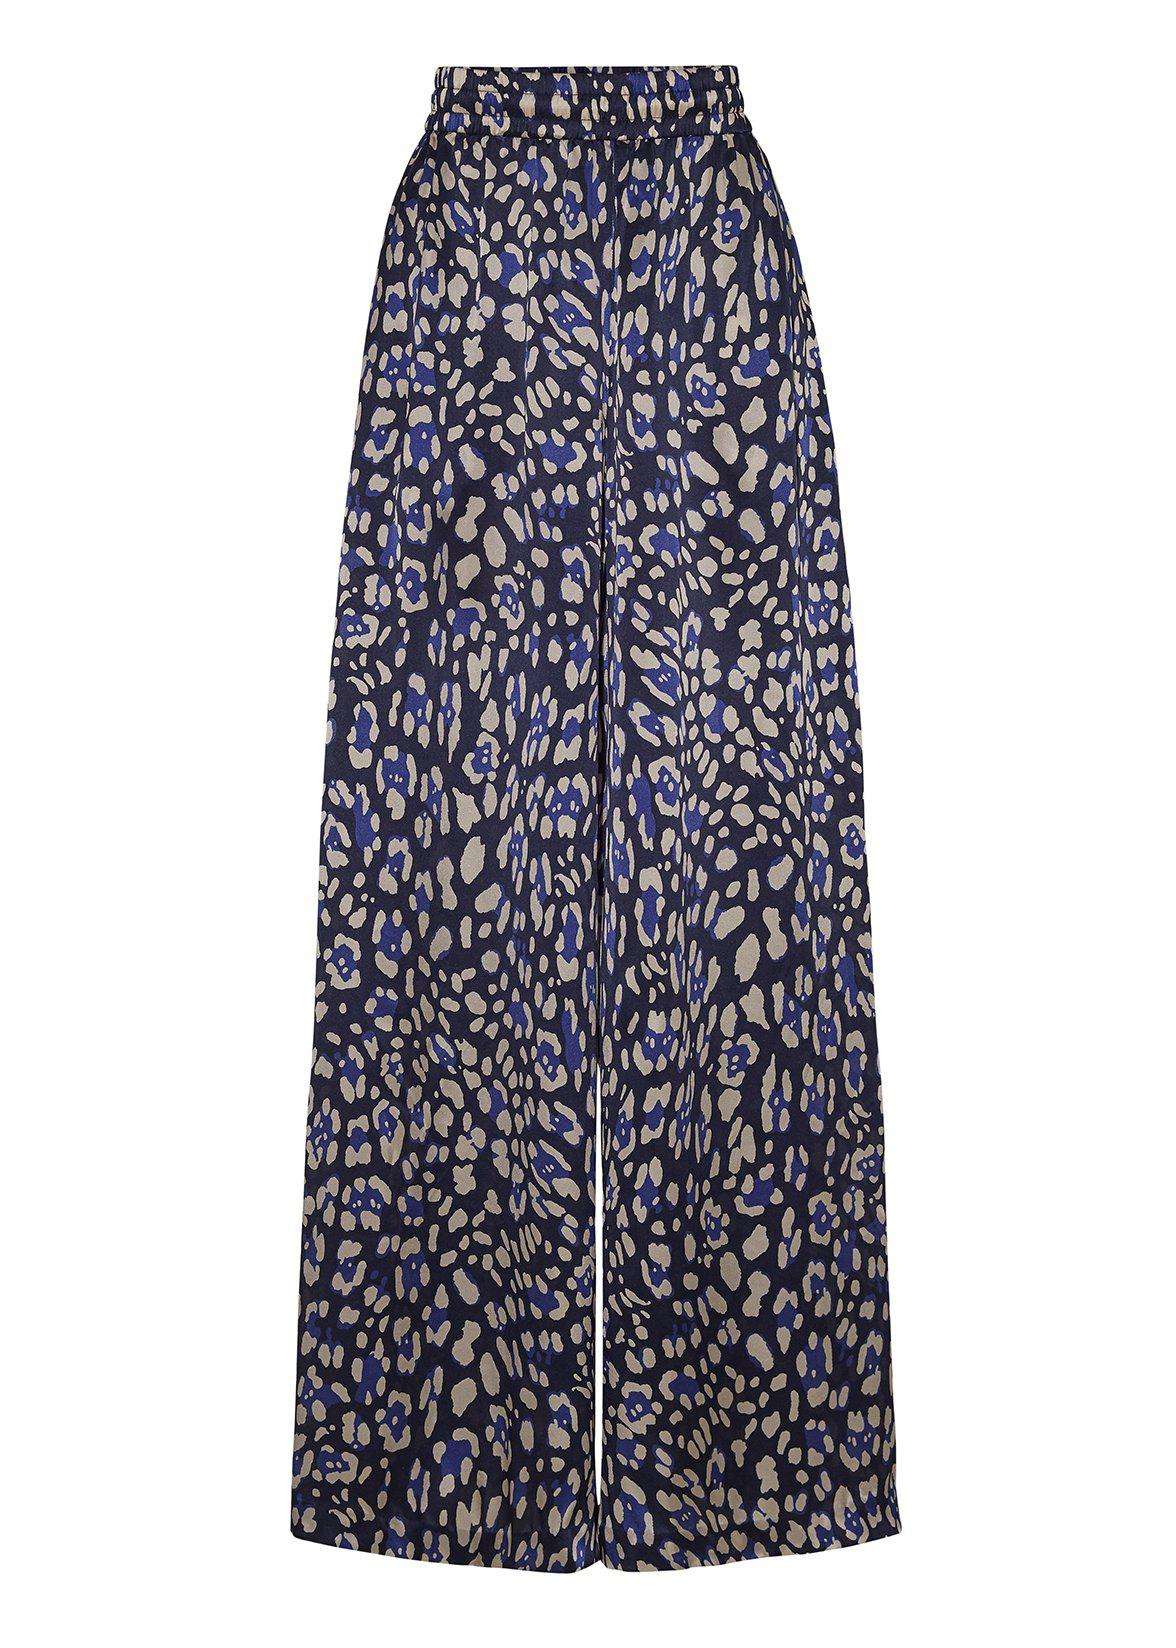 WIDE-LEG PANT IN PRINTED CHARMEUSE 1